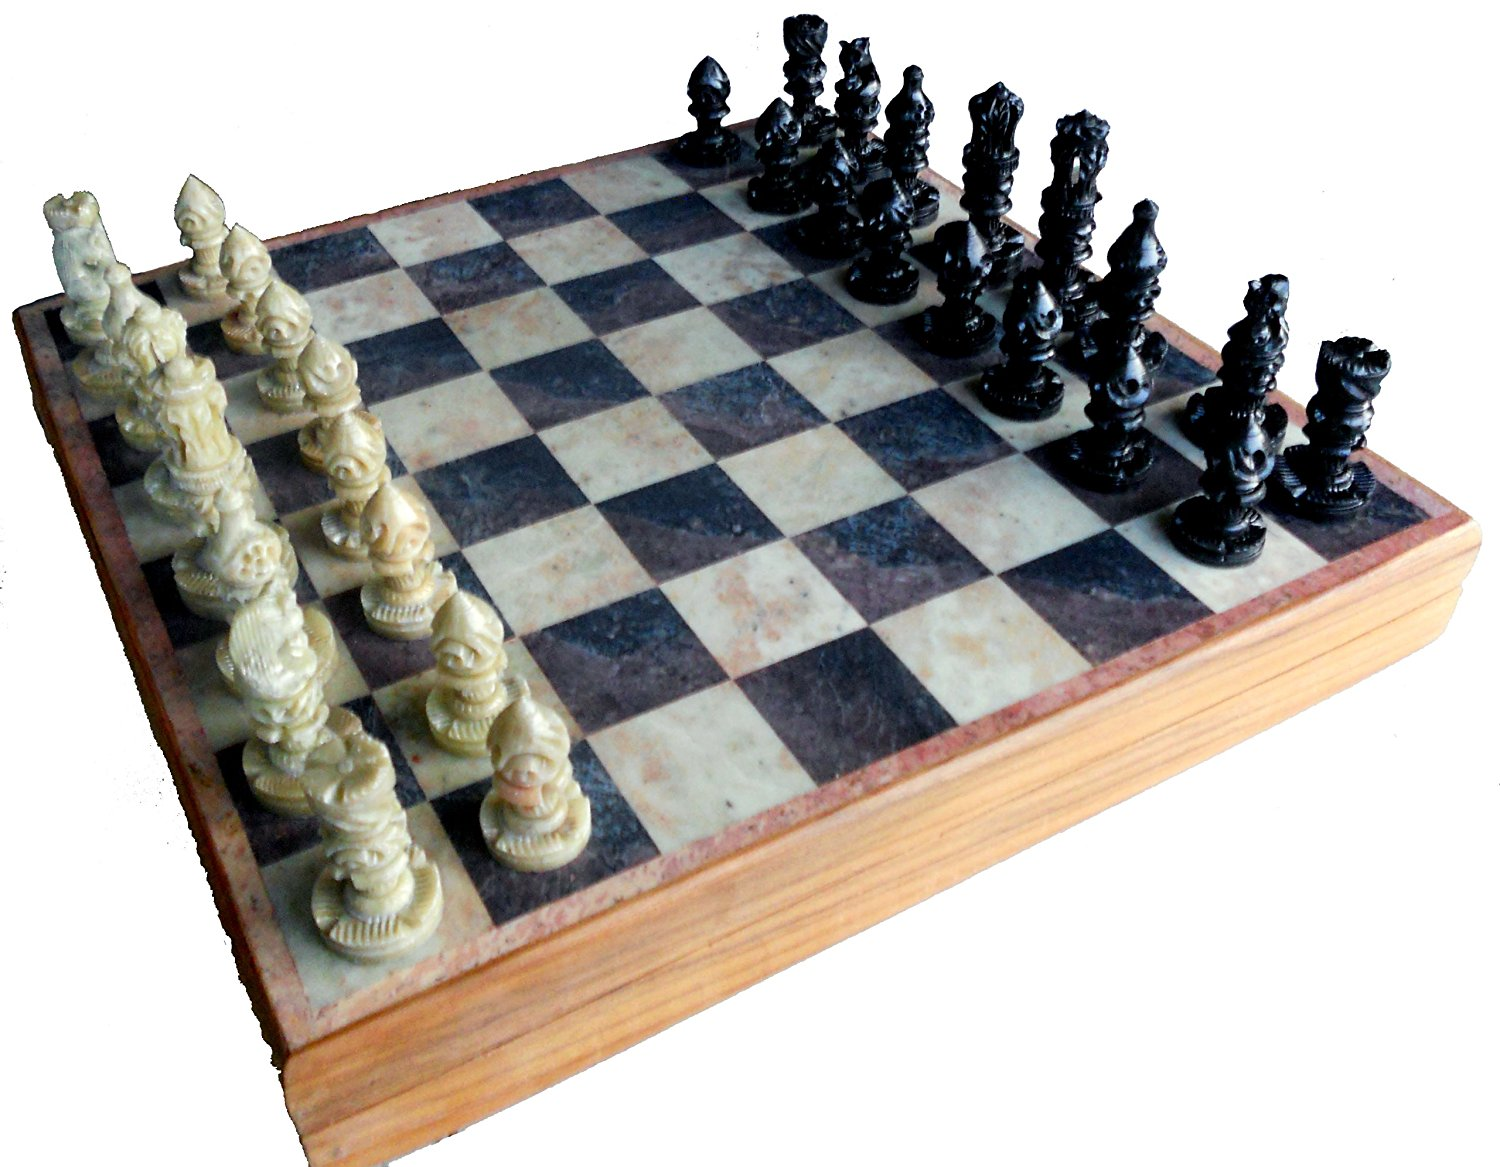 Buy Stonkraft Handcarved Wooden Stone Inlay Chess Game Board Set